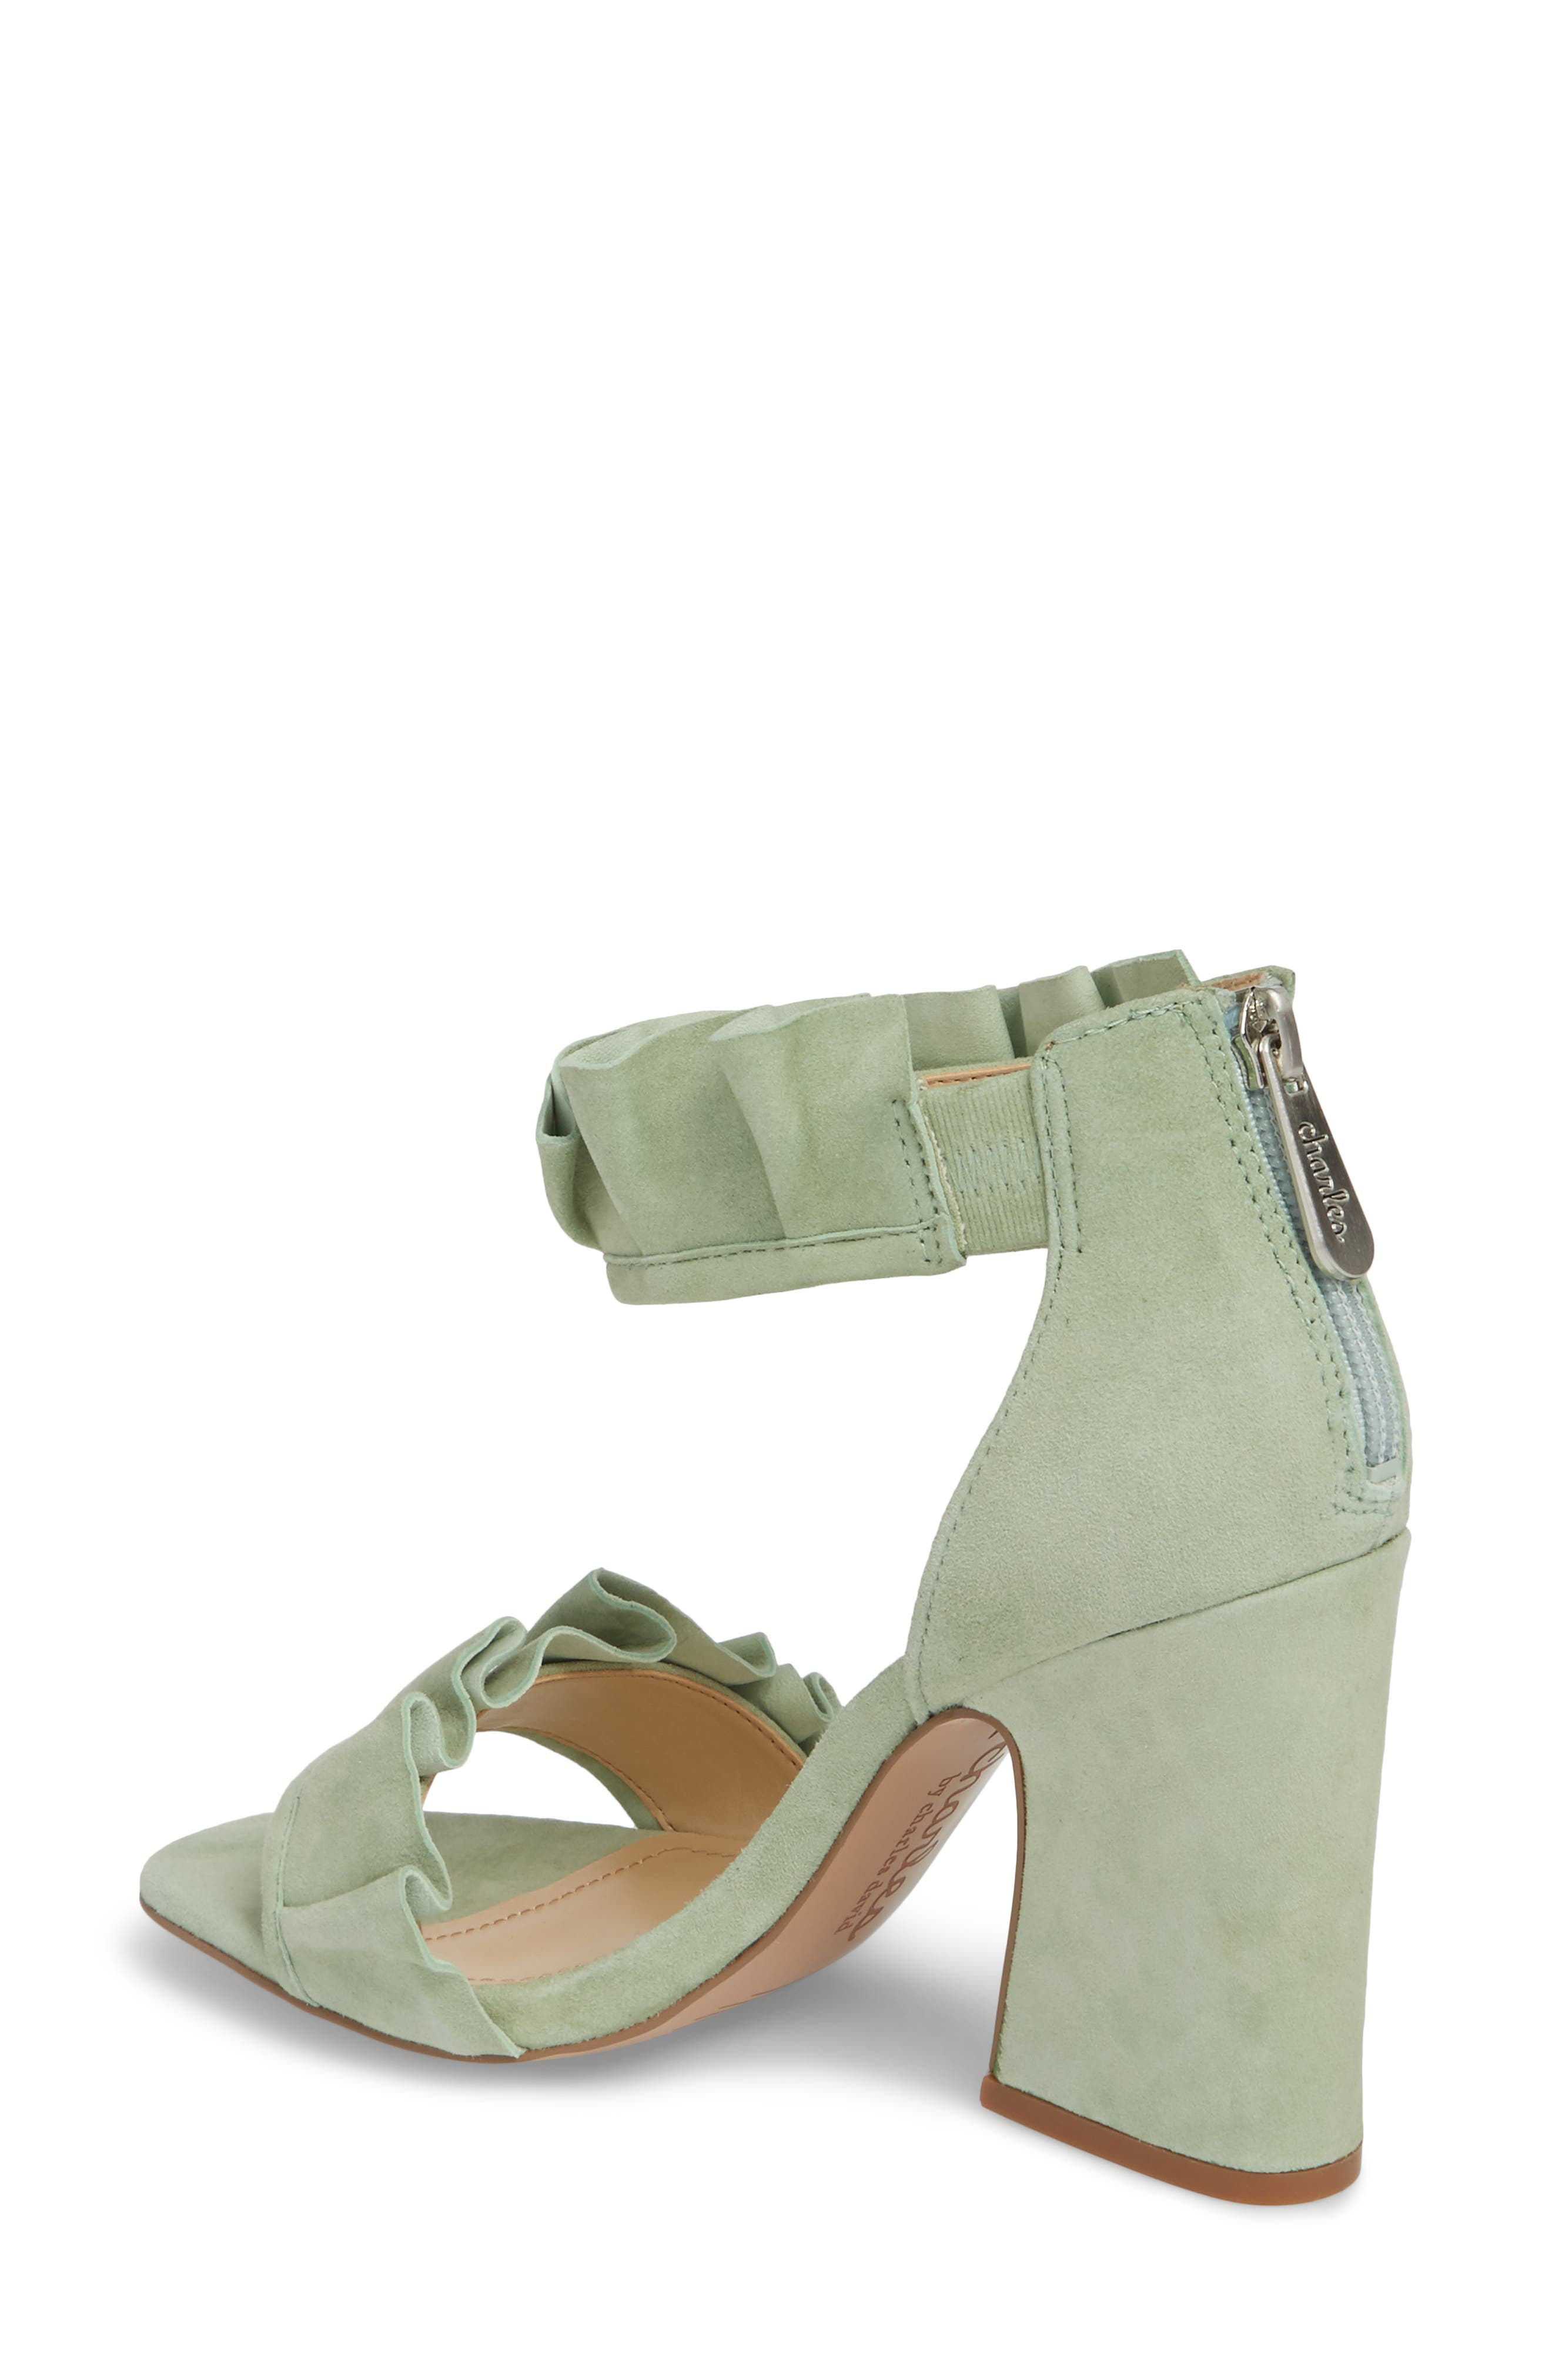 Haley Ruffle Sandal,                             Alternate thumbnail 2, color,                             MINT SUEDE